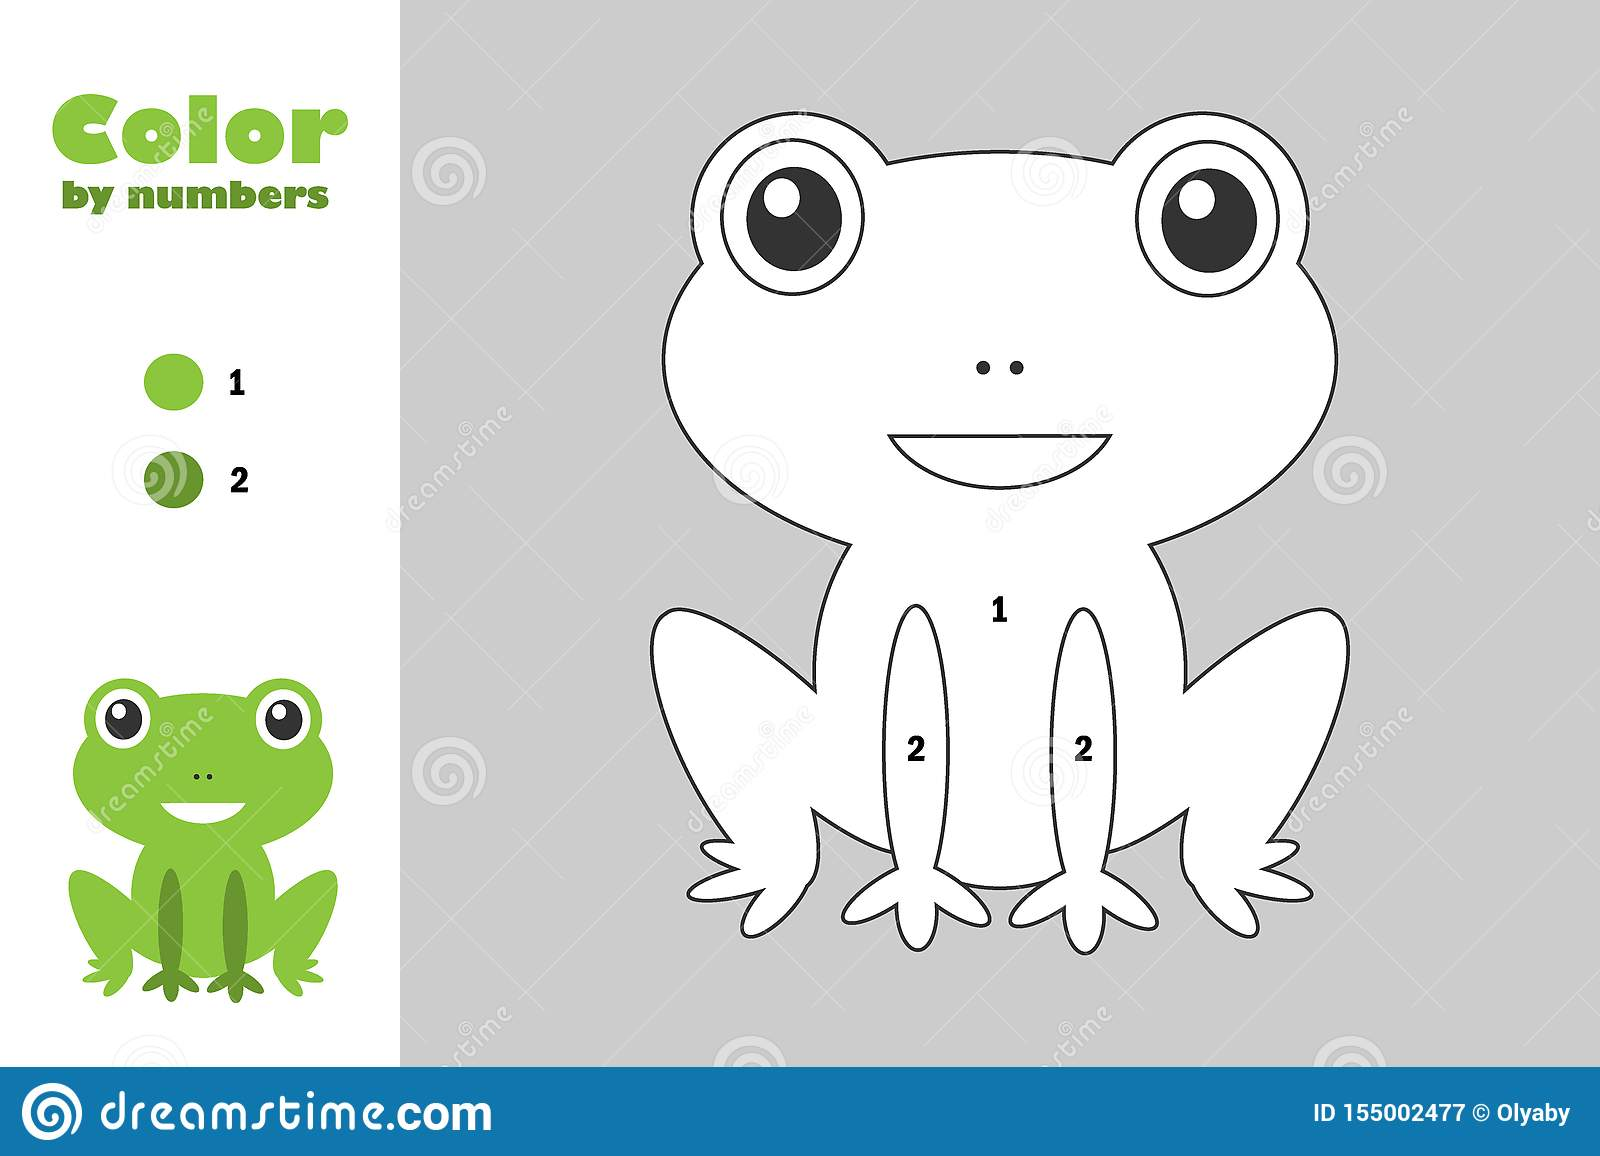 Green Frog In Cartoon Style Color By Number Education